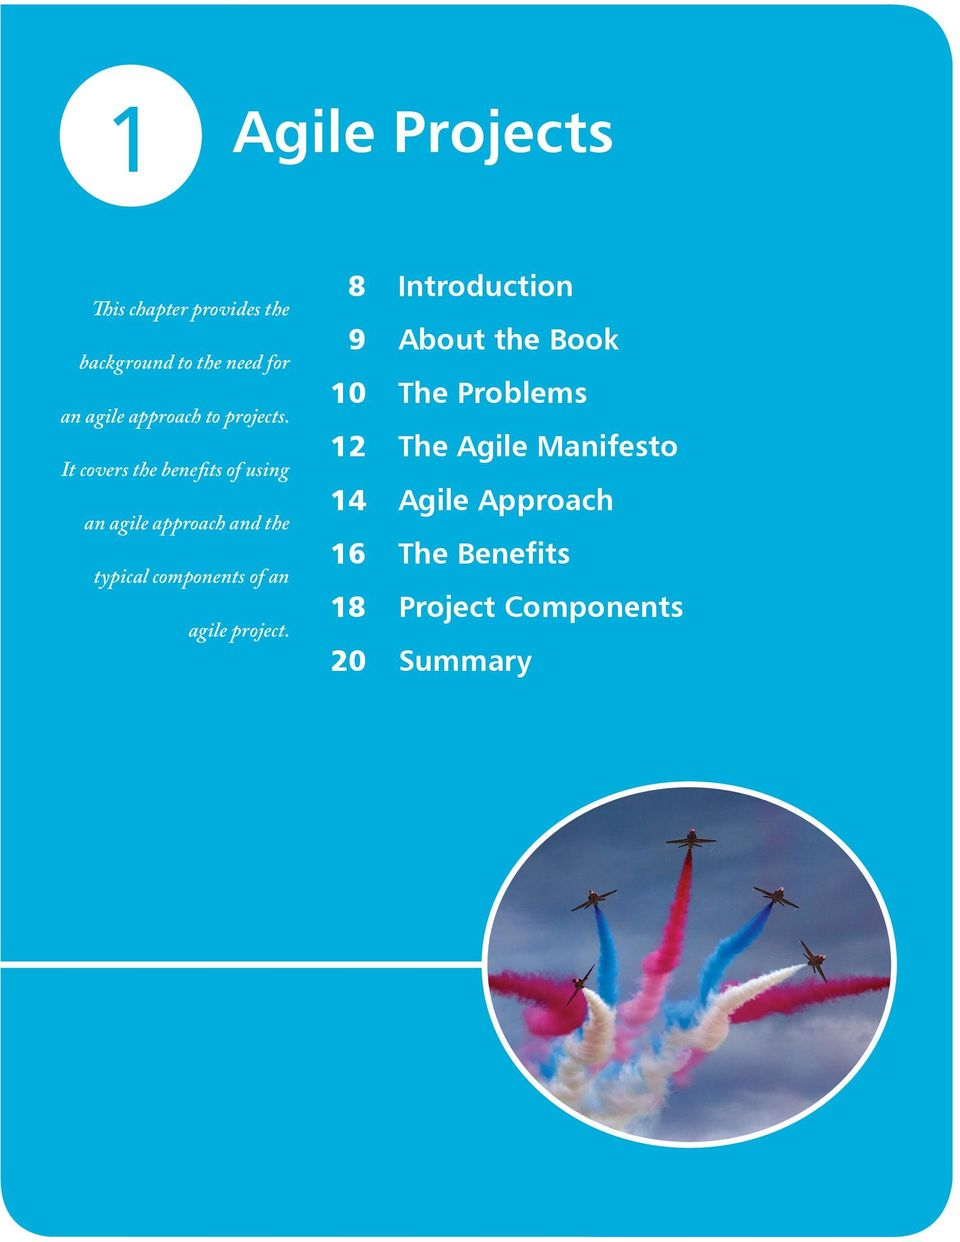 It covers the benefits of using an agile approach and the typical components of an